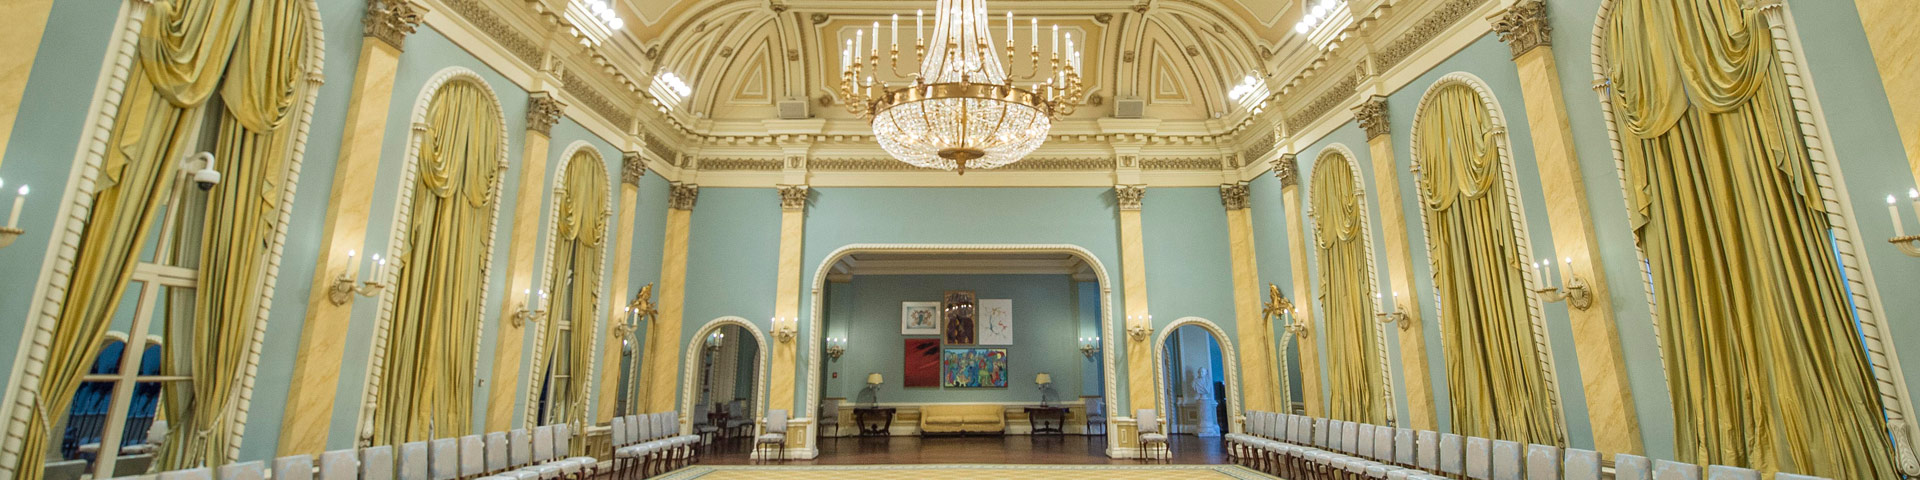 The Ballroom at Rideau Hall